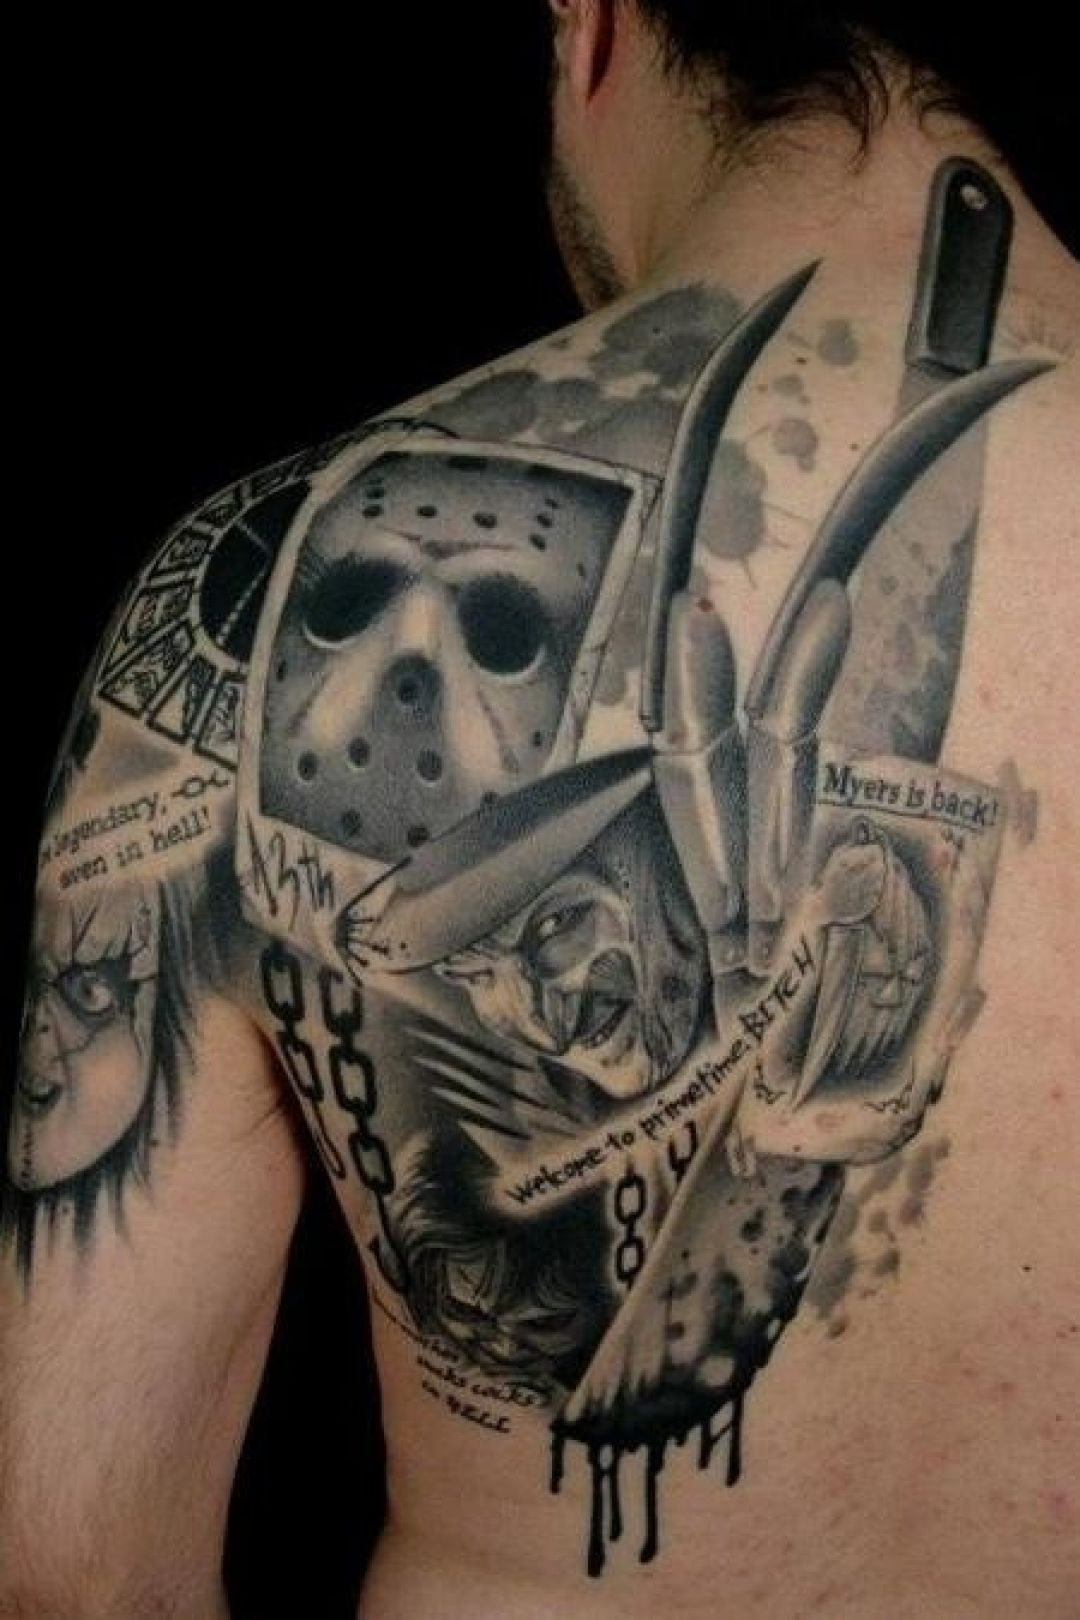 Horror Movie Back Tattoo Design Movie Tattoos Tattoos Sick Tattoo